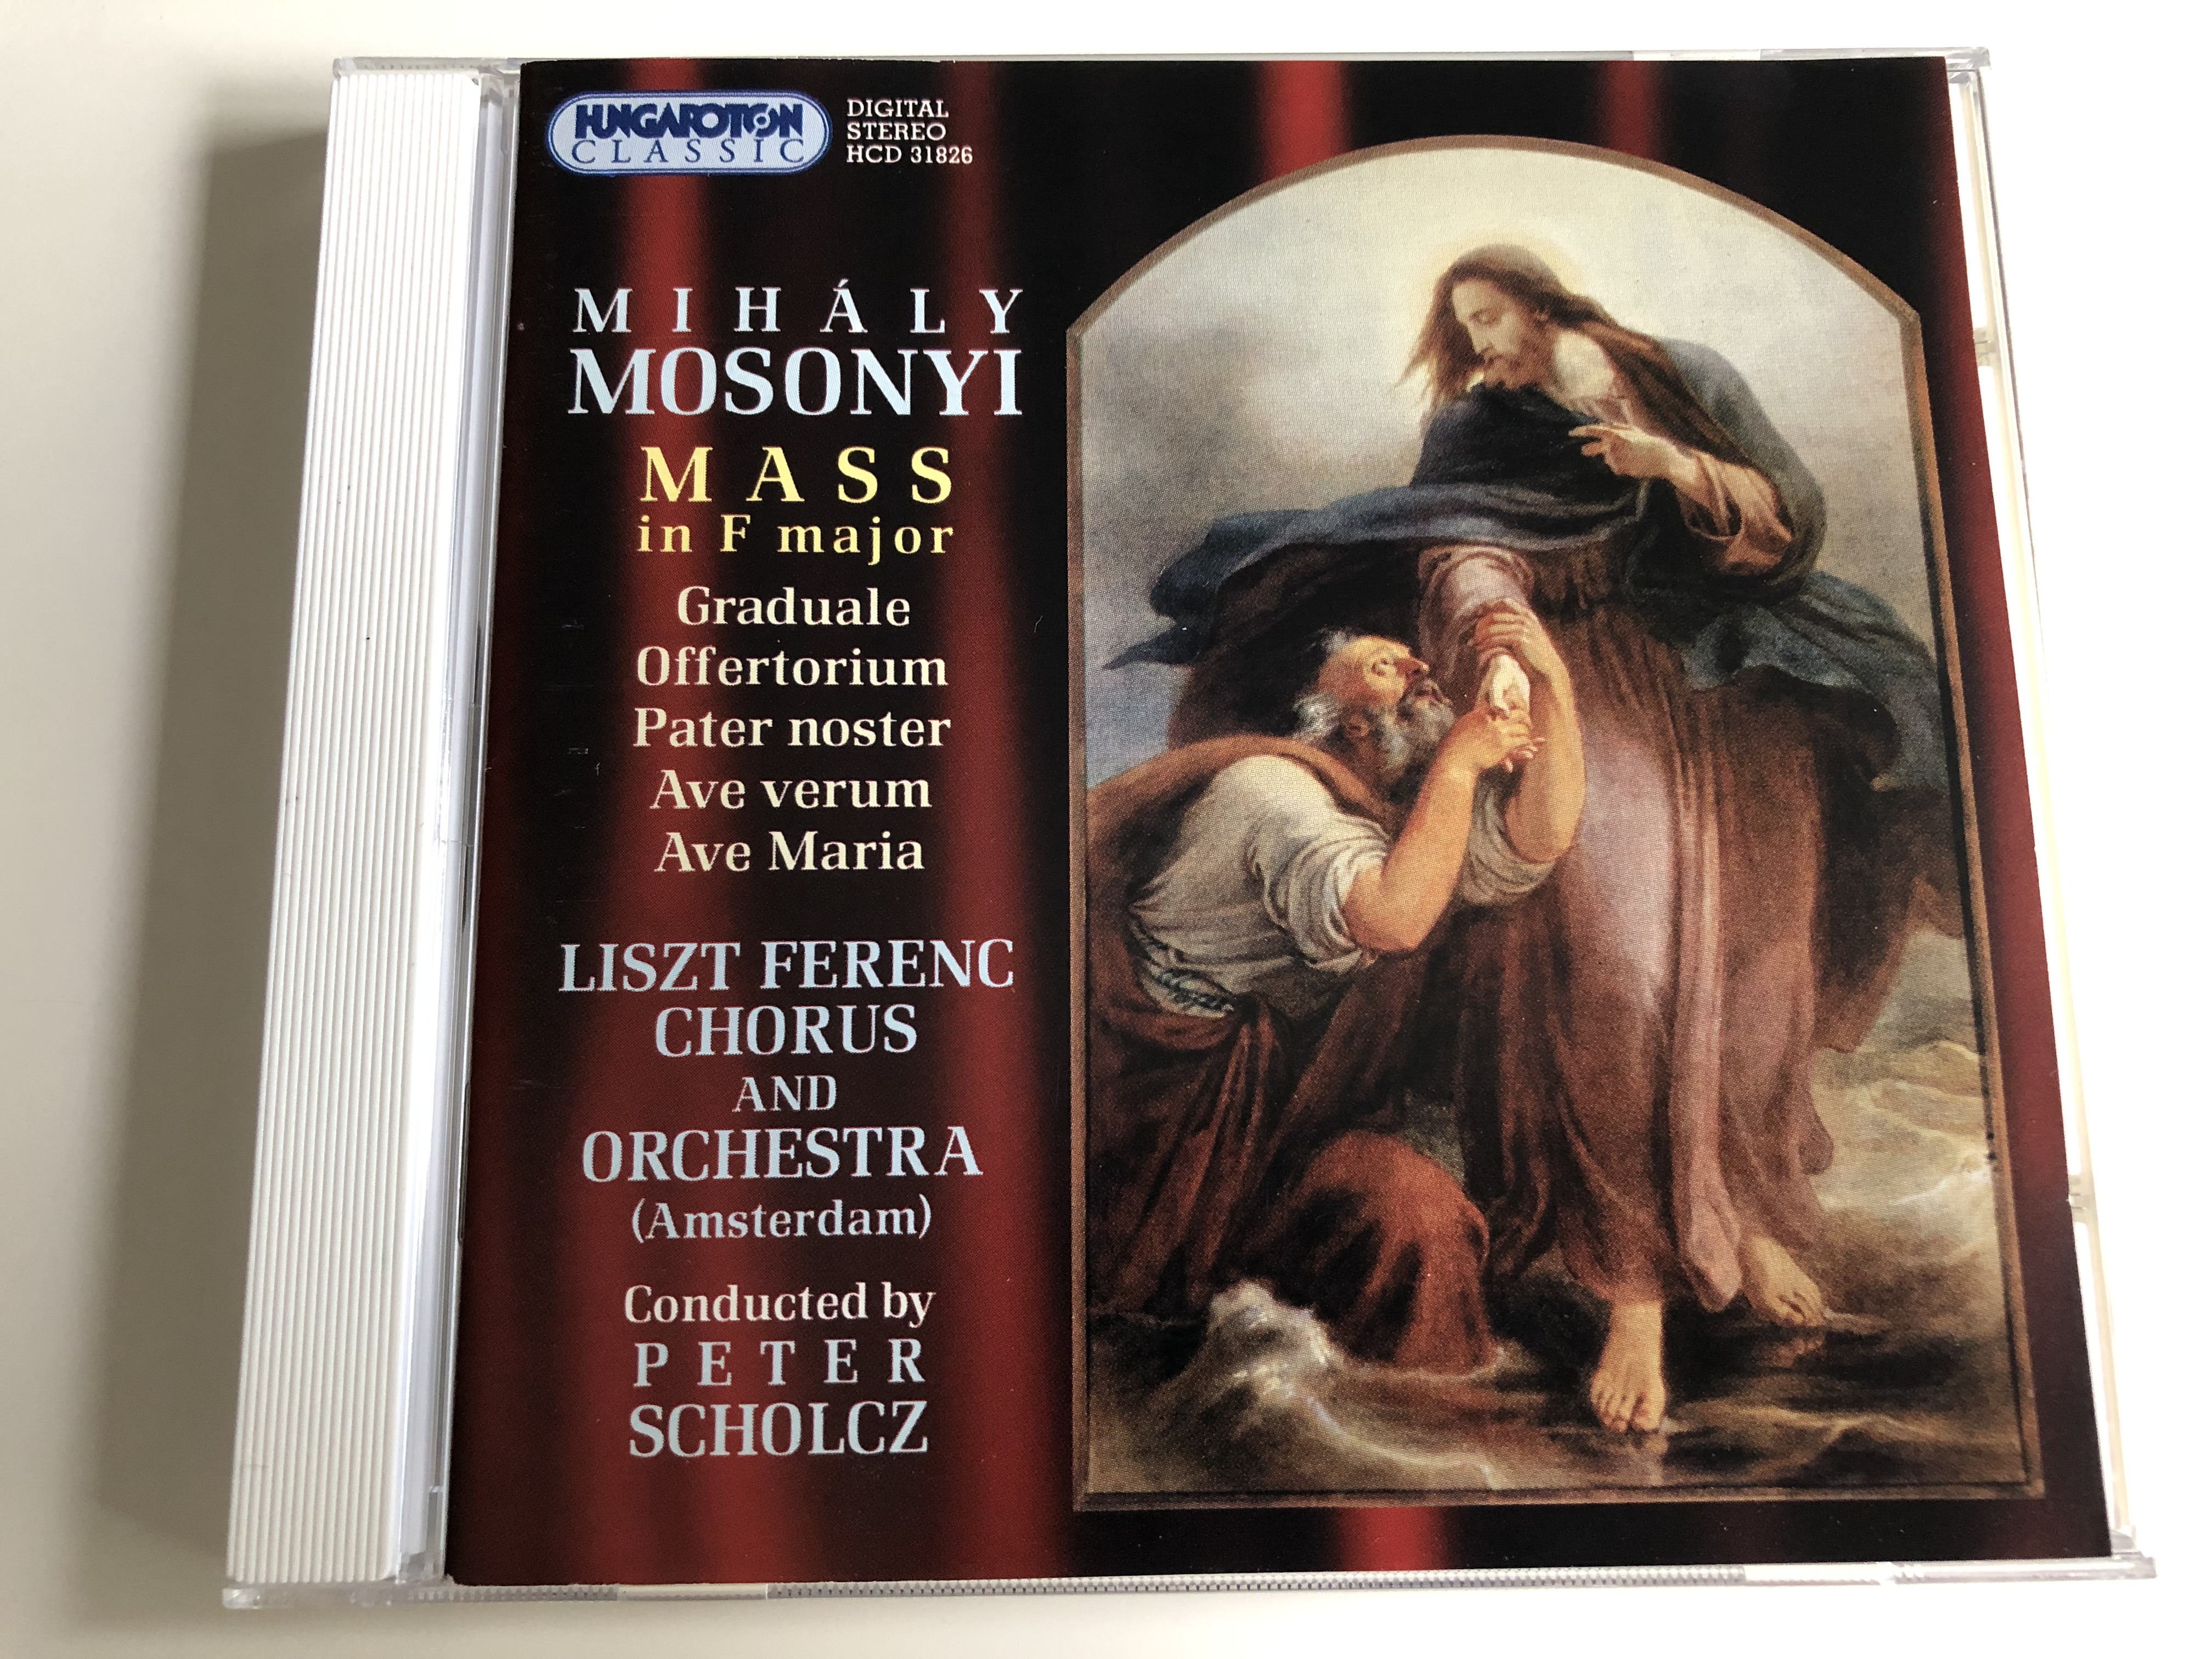 mih-ly-mosonyi-mass-in-f-major-graduale-offertorium-pater-noster-ave-verum-ave-maria-liszt-ferenc-chorus-and-orchestra-amsterdam-conducted-by-peter-scholcz-hungaroton-hcd-31826-1-.jpg